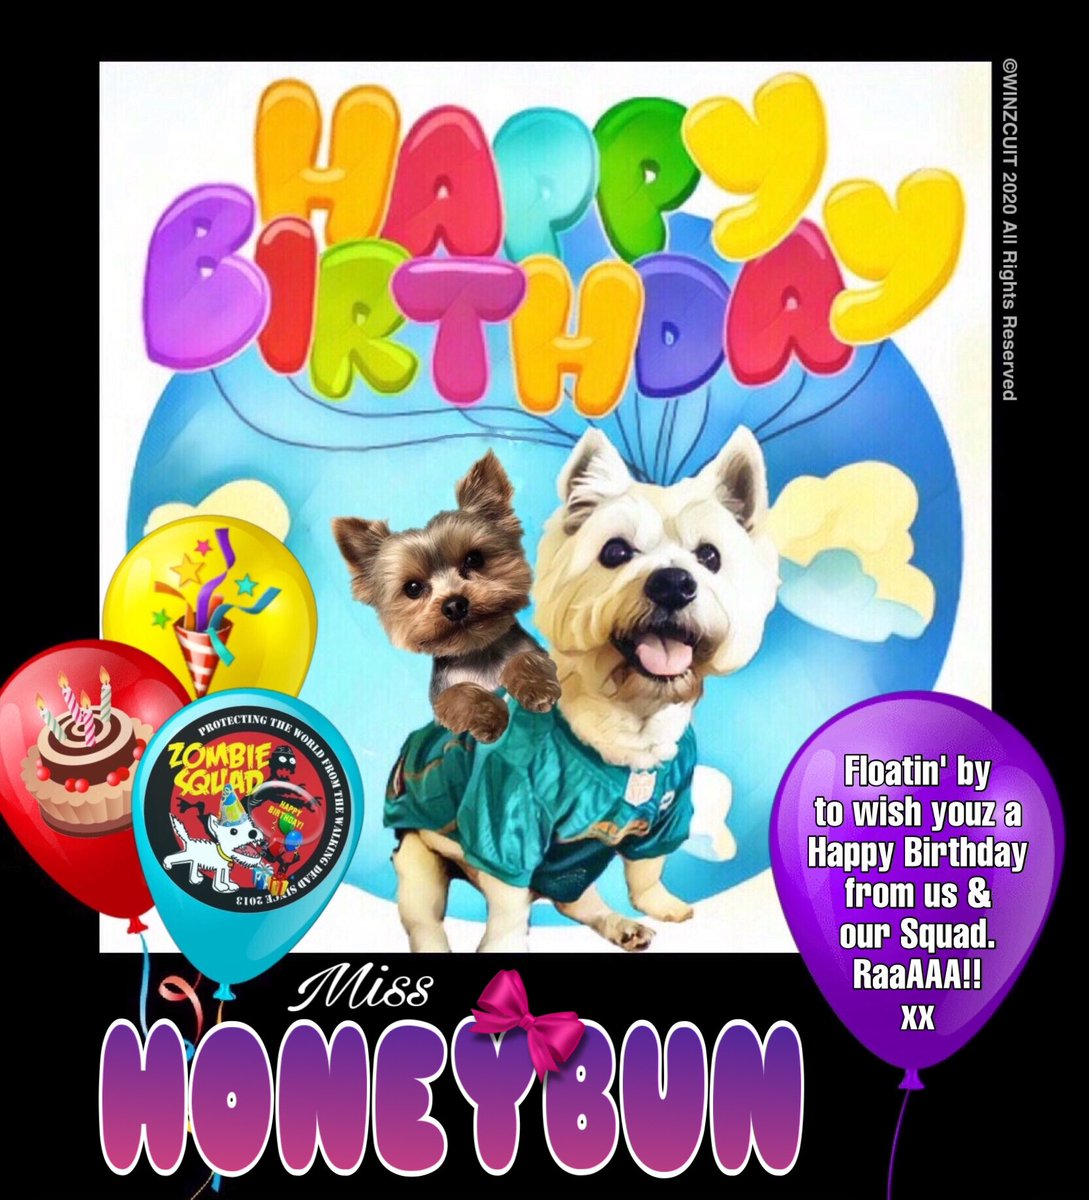 🎂Wishing a very 🎁HAPPY BIRTHDAY🎉 to our pawsome pal, HONEYBUN from Leada Billy & your ZombieSquad pals. We hope your special day is full of tasty treats, belly rubs & cayke, soldyer. RaaAAA!! 💜🎂🎁🎈🎉 @honeybun667 @ZombieSquadHQ #ZSHQ https://t.co/IBHUAbvh4F